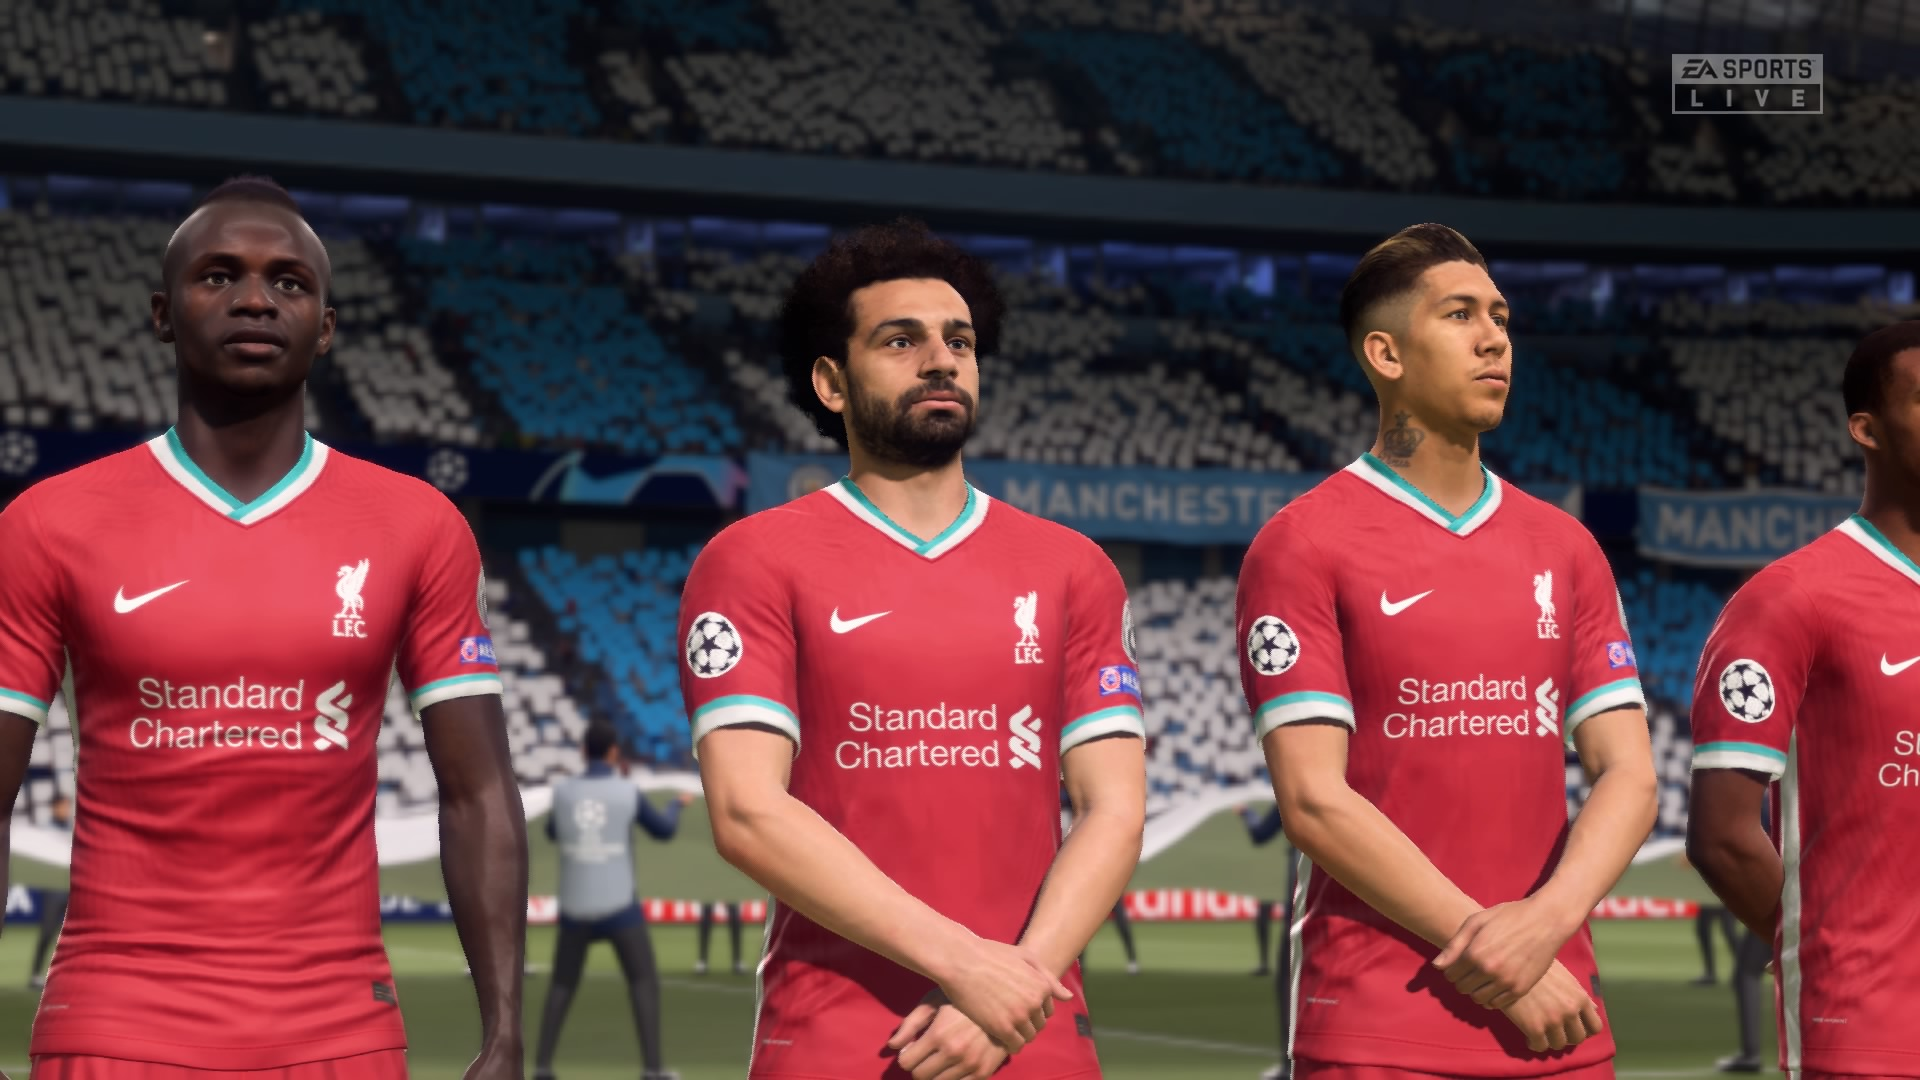 fifa 21 best teams to play as from